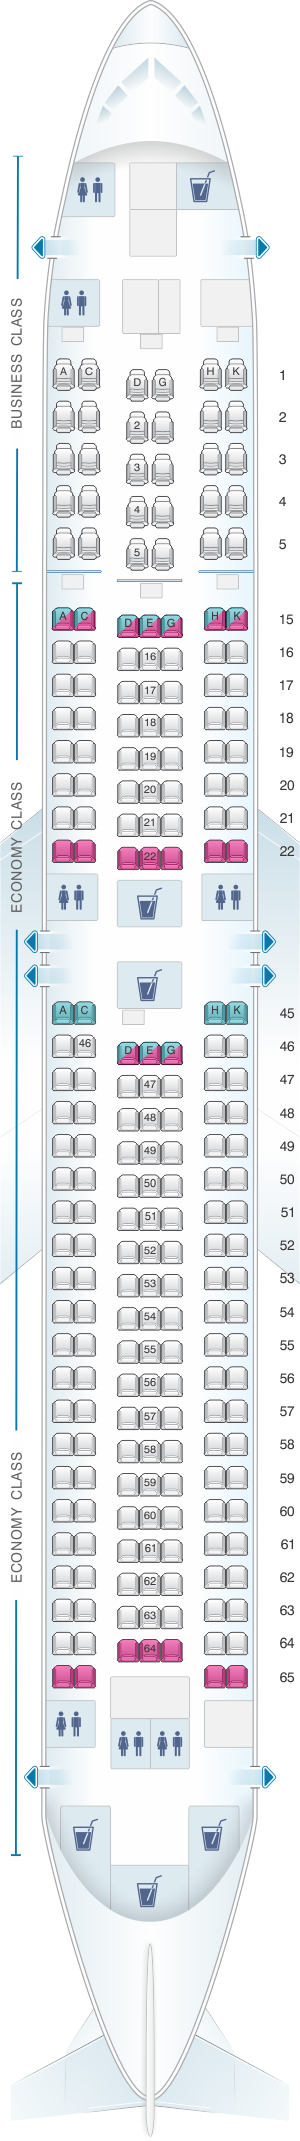 Seat map for Japan Airlines (JAL) Boeing B767 300ER A43